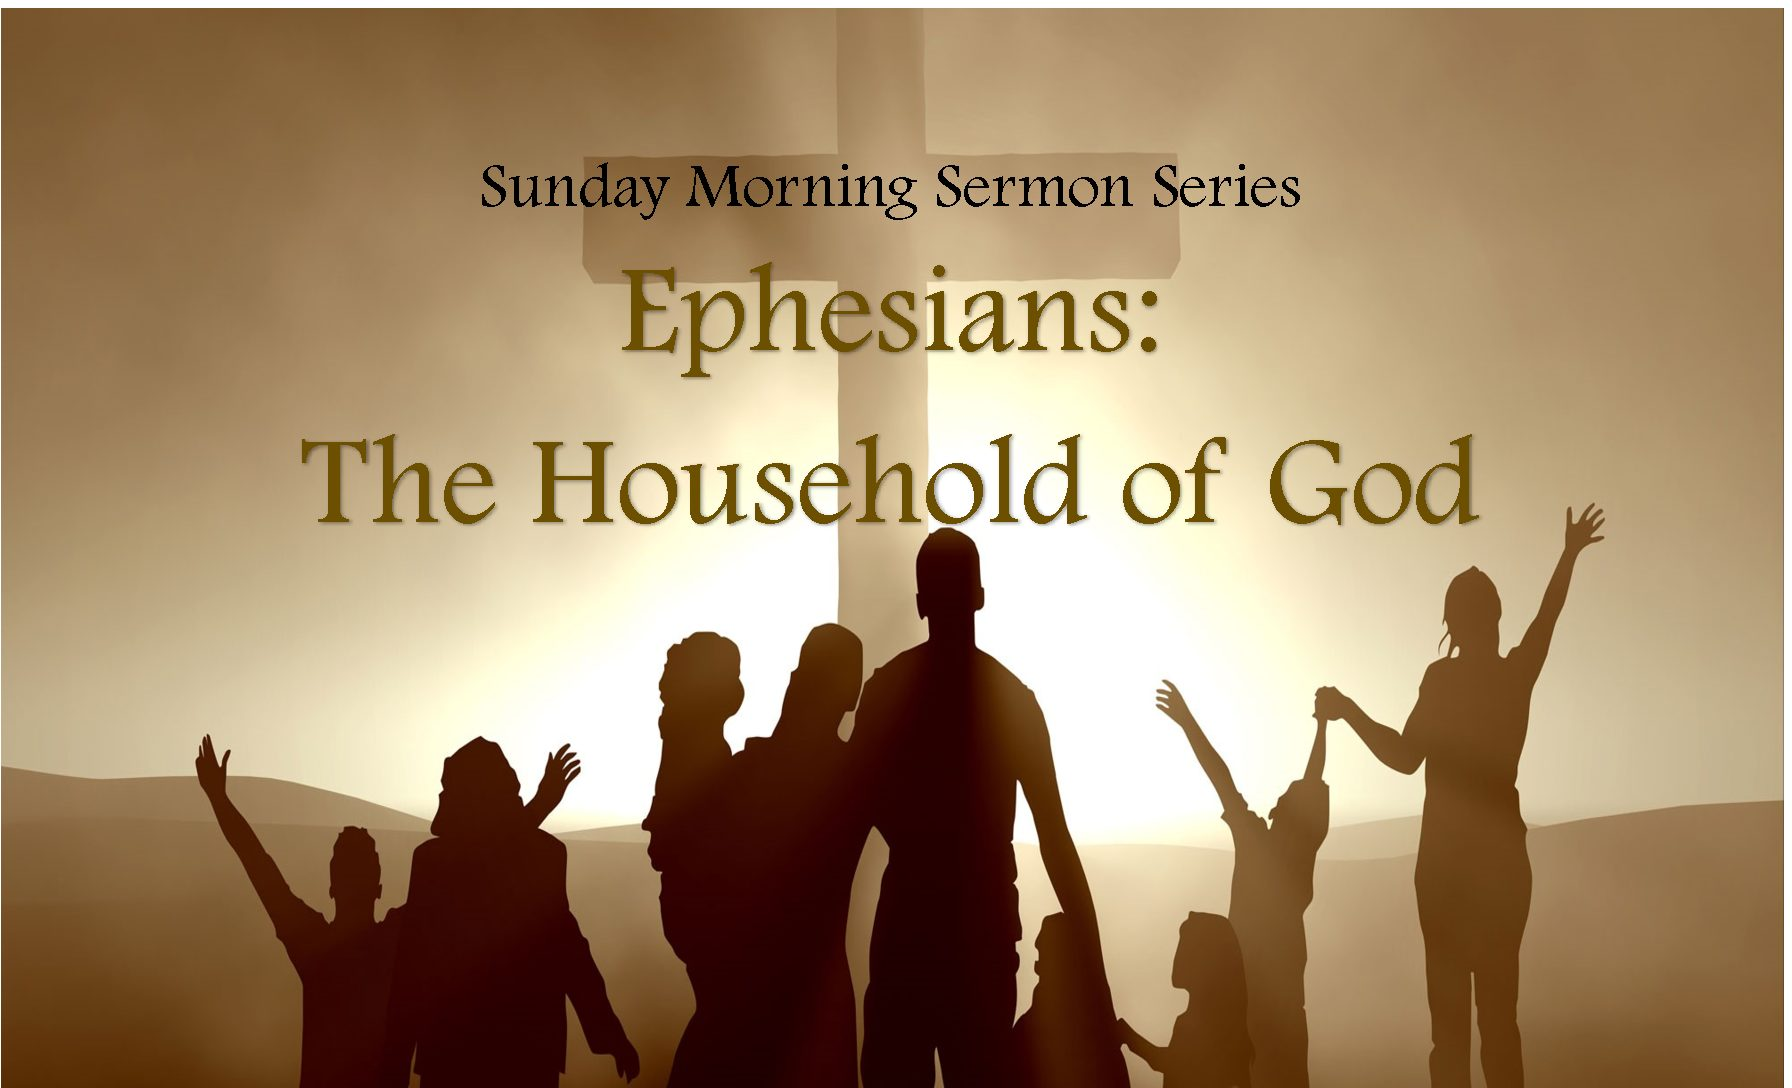 The Household of God: The Basis of Unity